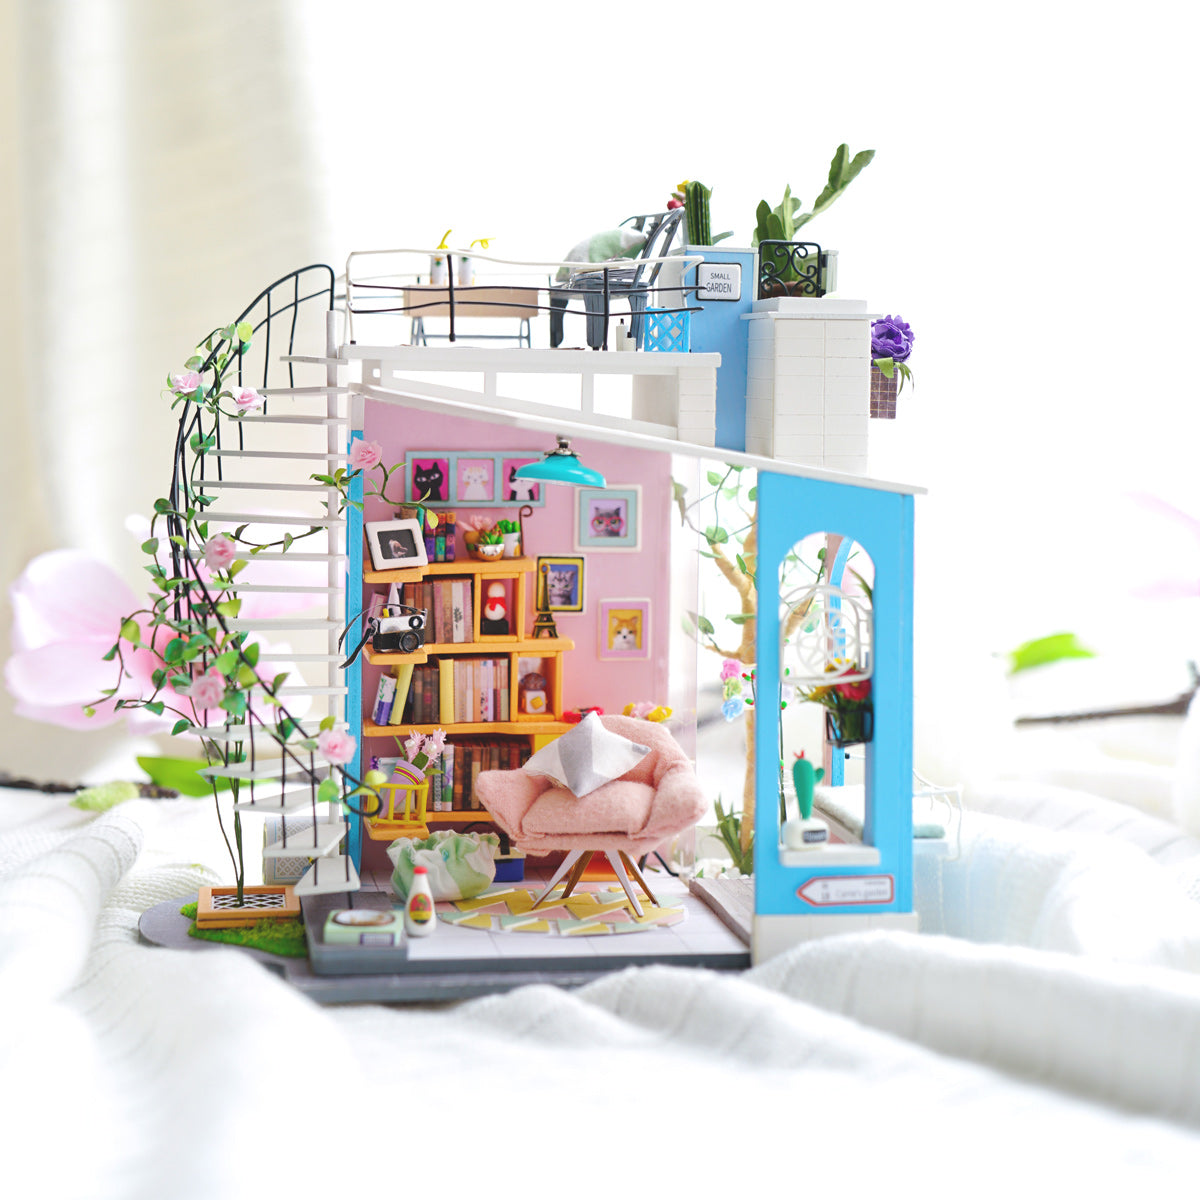 Robotime loft DIY miniature dollhouse